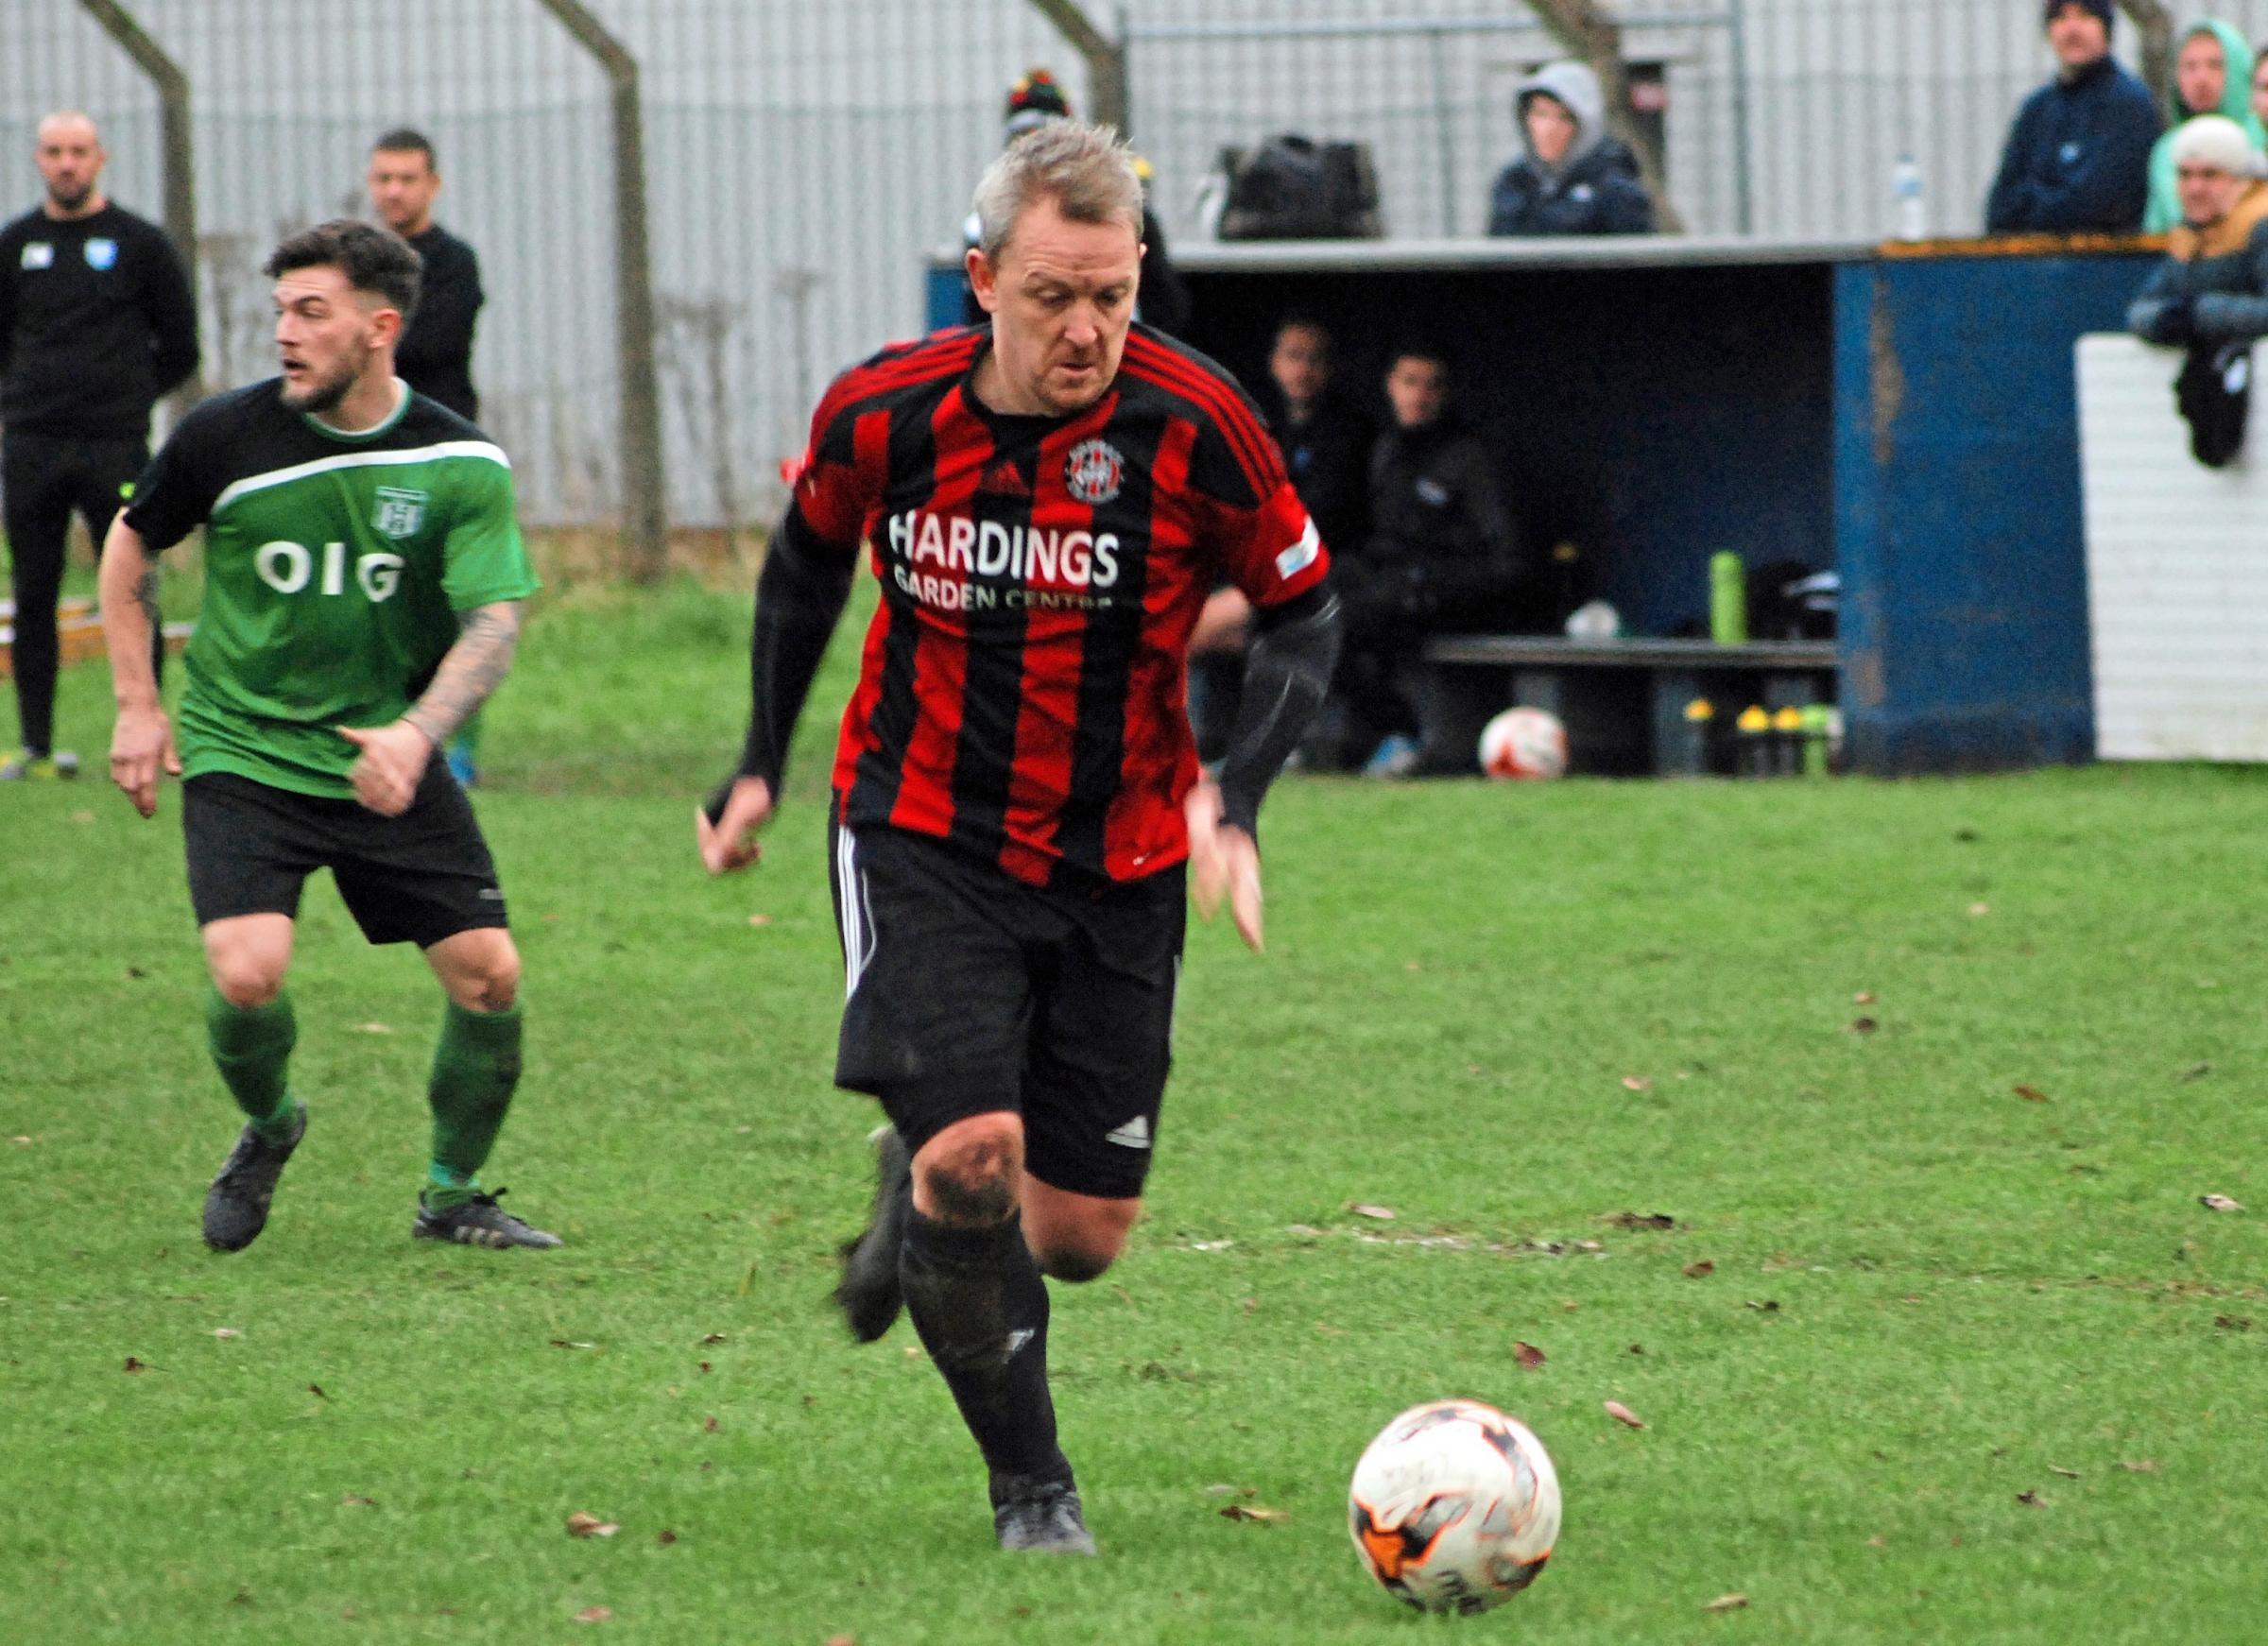 Danny Barton of Guilsfield Reserves. Picture by Darren Hyland.